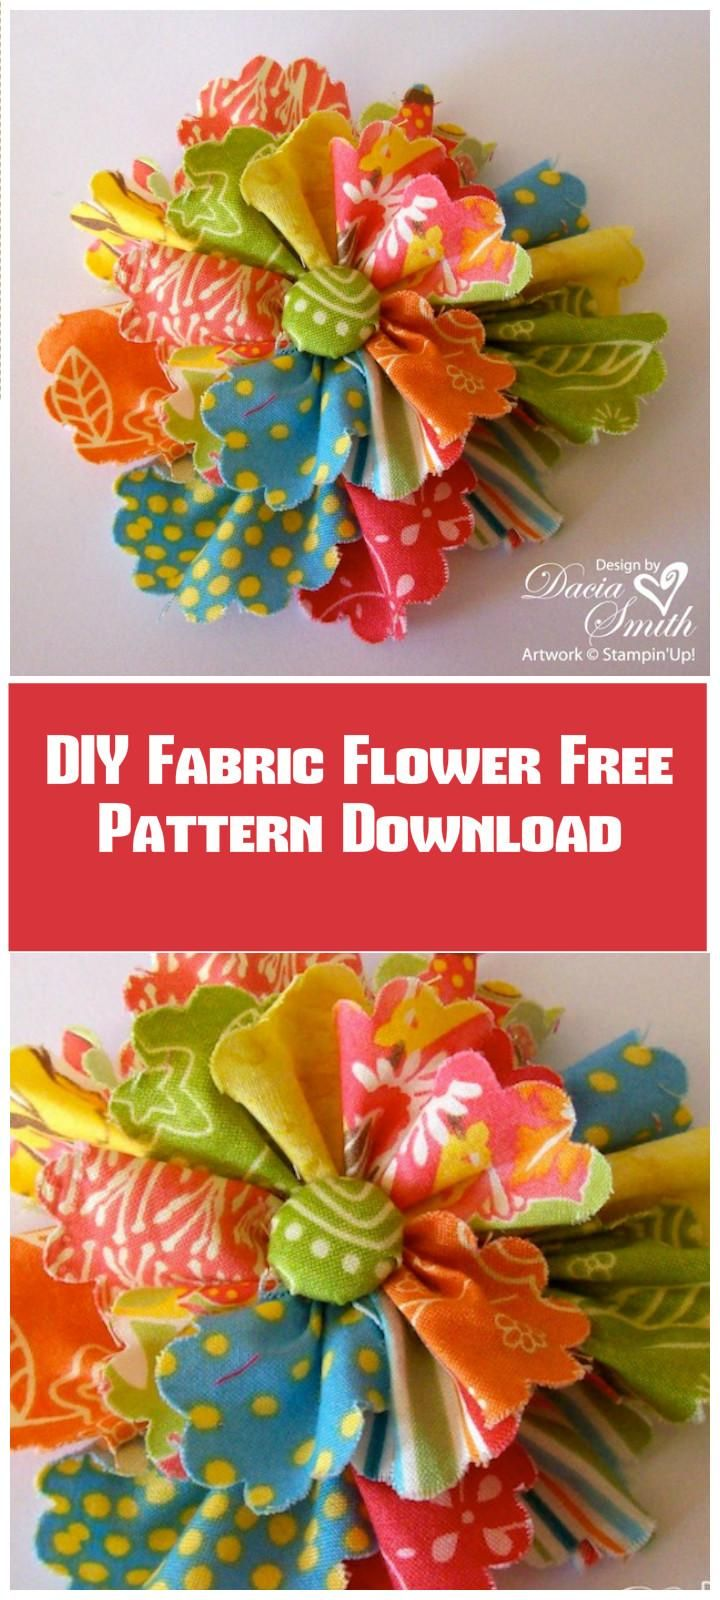 50 Easy Fabric Flowers Tutorial - Make Your Own Fabric Flowers -   25 fabric crafts clothes ideas